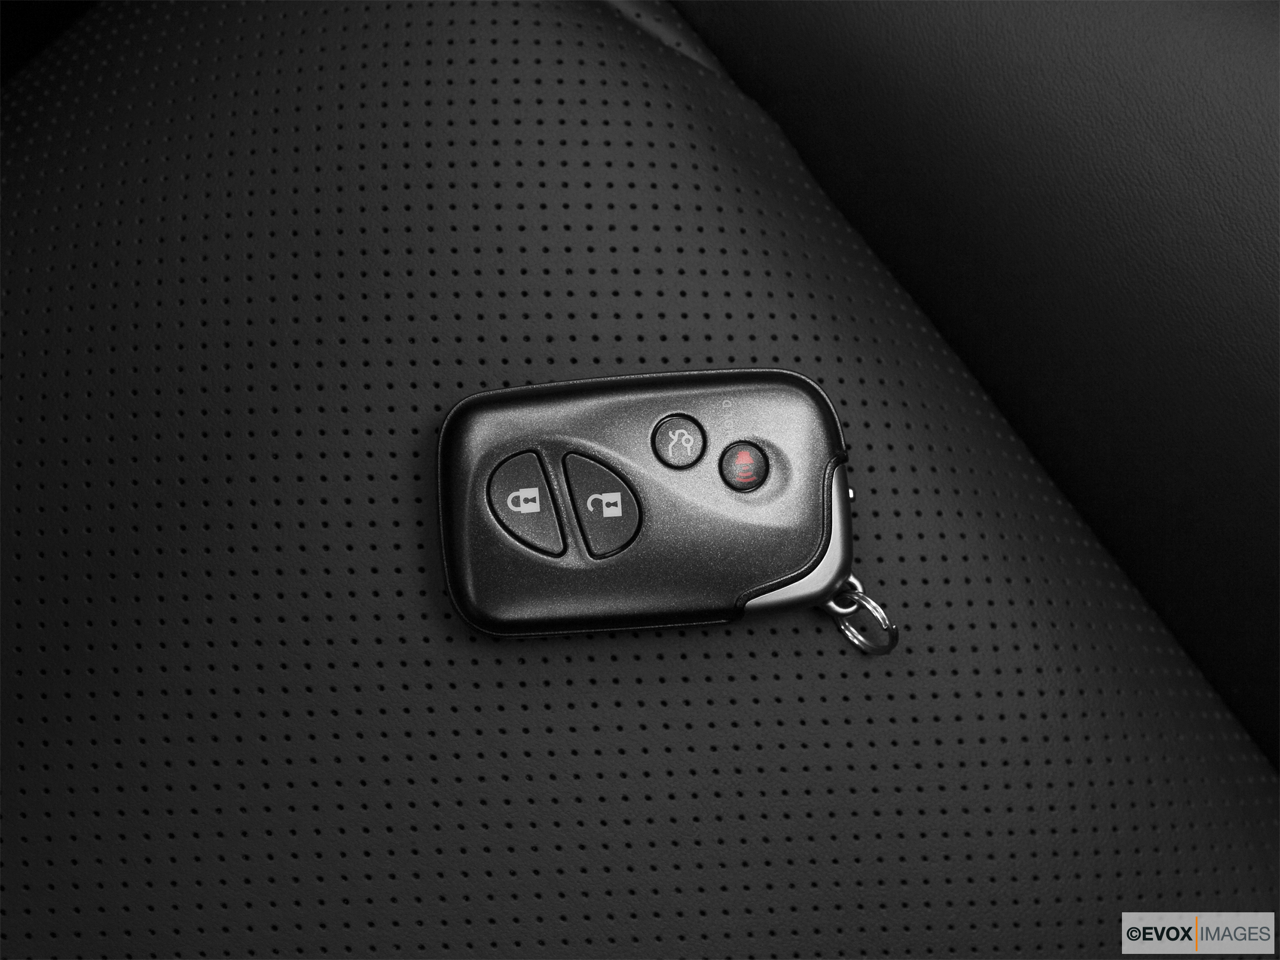 2010 Lexus IS 250 IS250 Key fob on driver's seat.